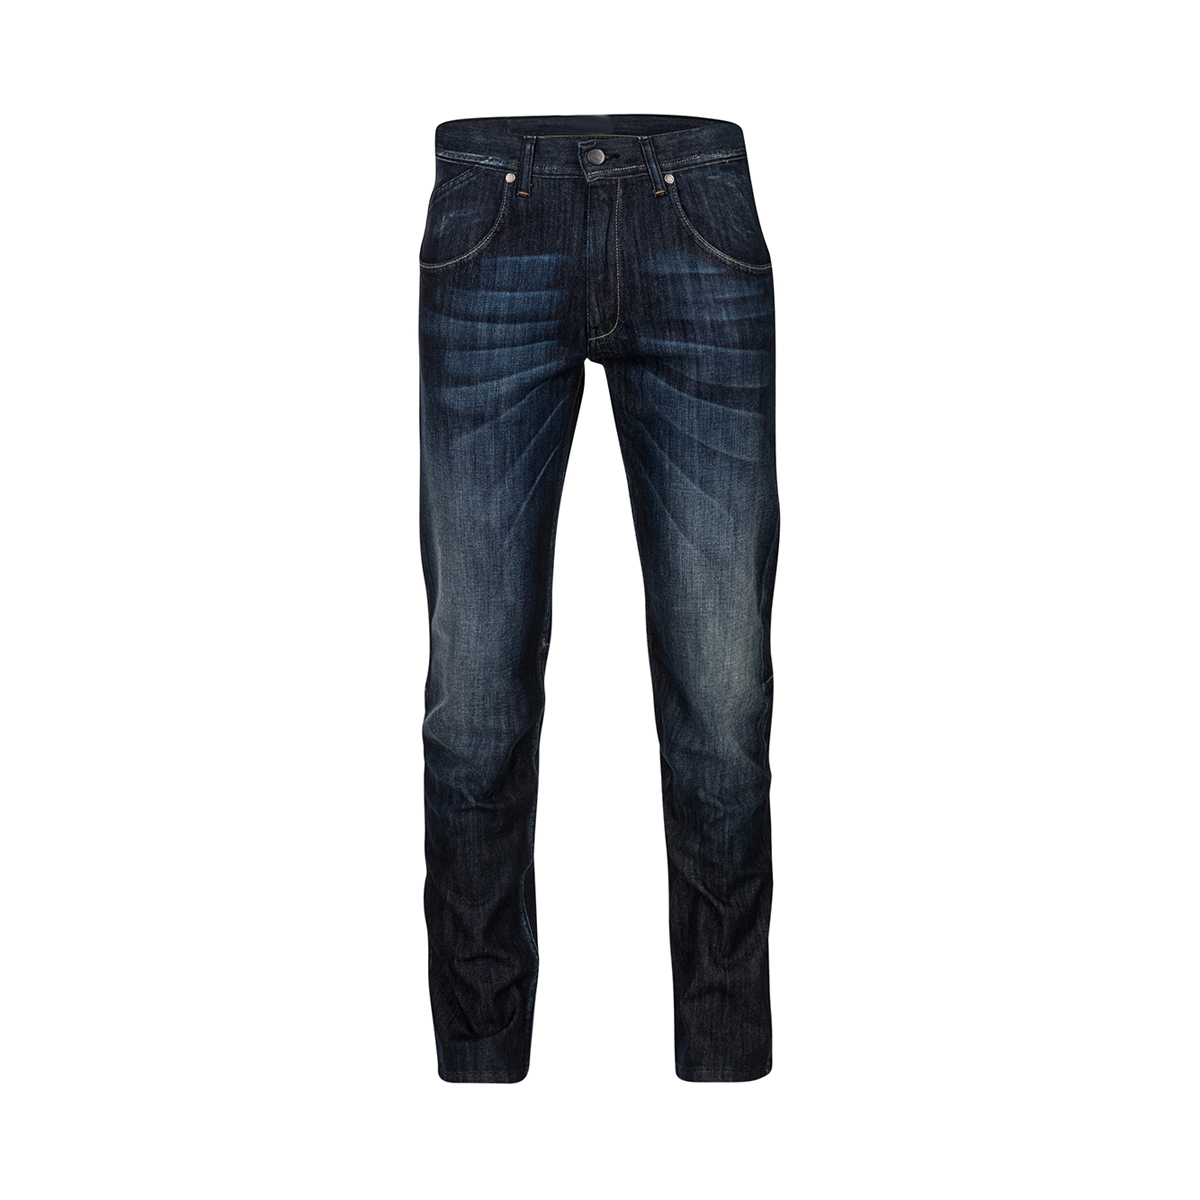 Nihil Climbing Blue Tabaco Jeans 2016 | Trousers